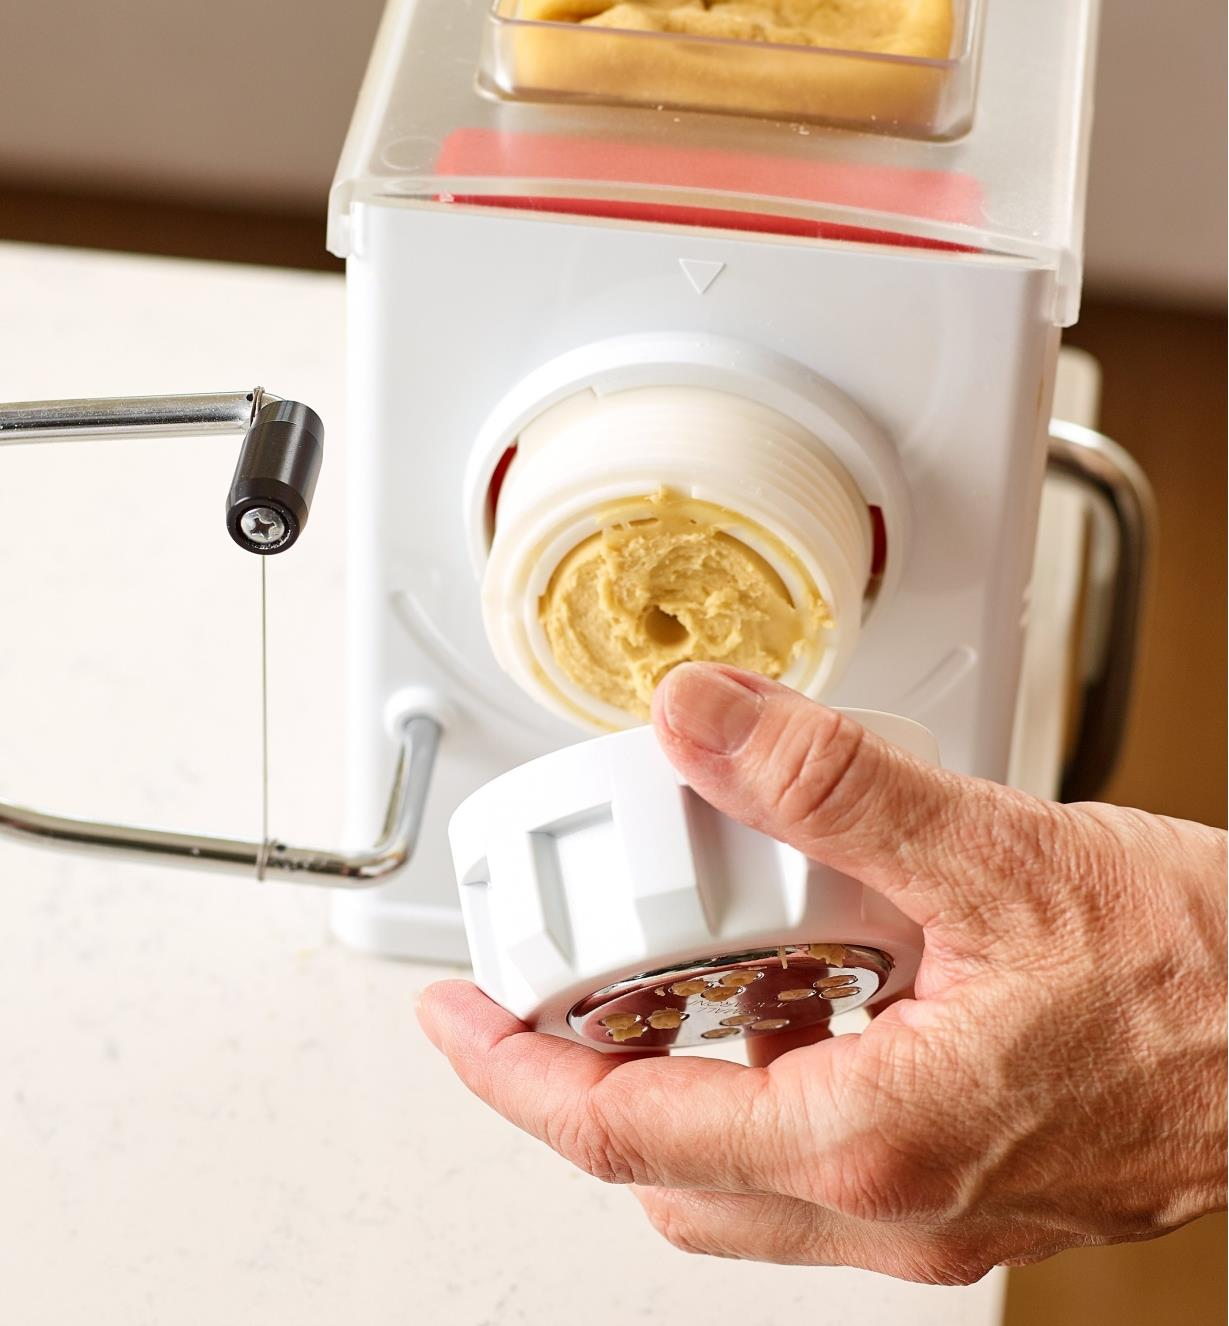 Mounting one of the interchangeable pasta dies onto a Marcato pasta extruder